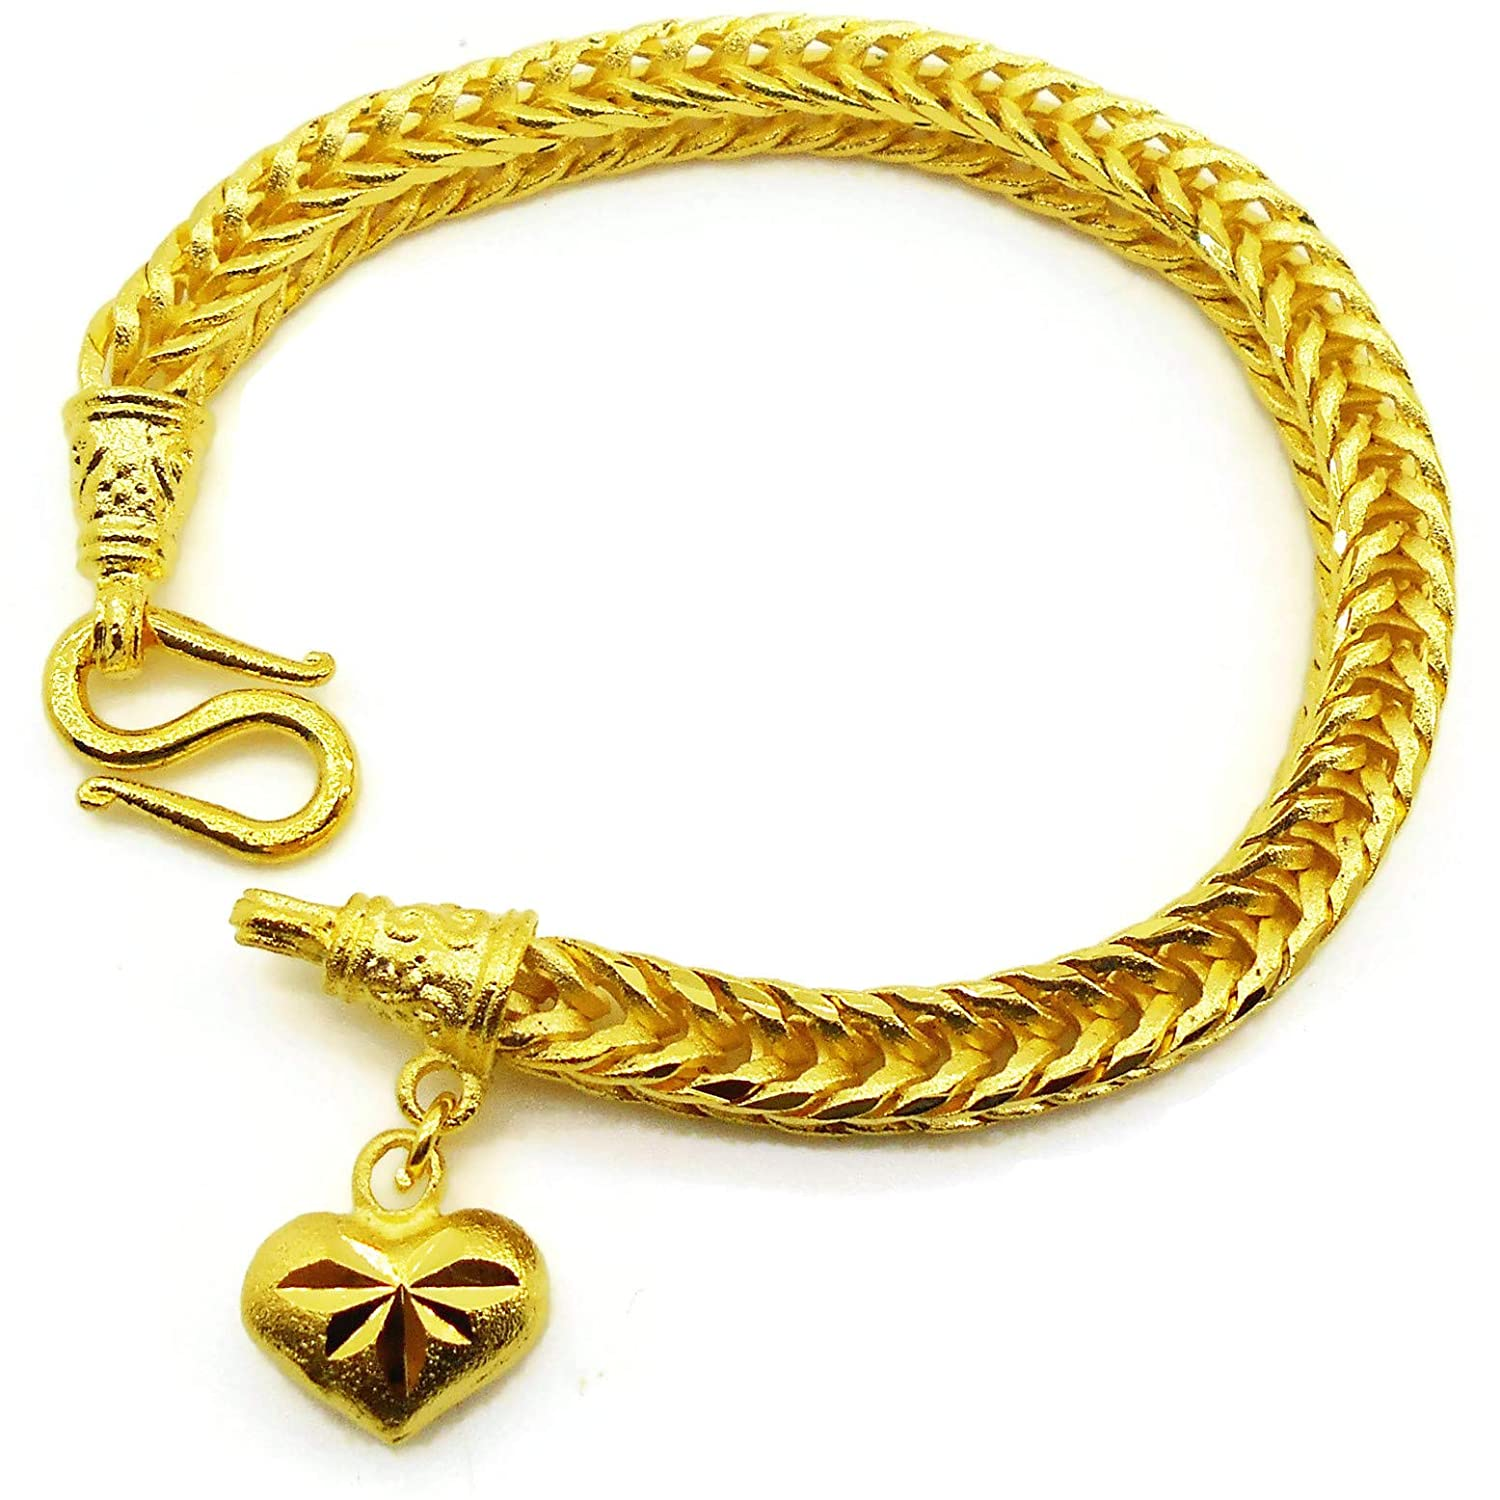 Braid Gorgeous Heart Charm Thai Baht Yellow Gold Plated Filled Bangle 23k 24k Bracelet Jewelry 7 inch